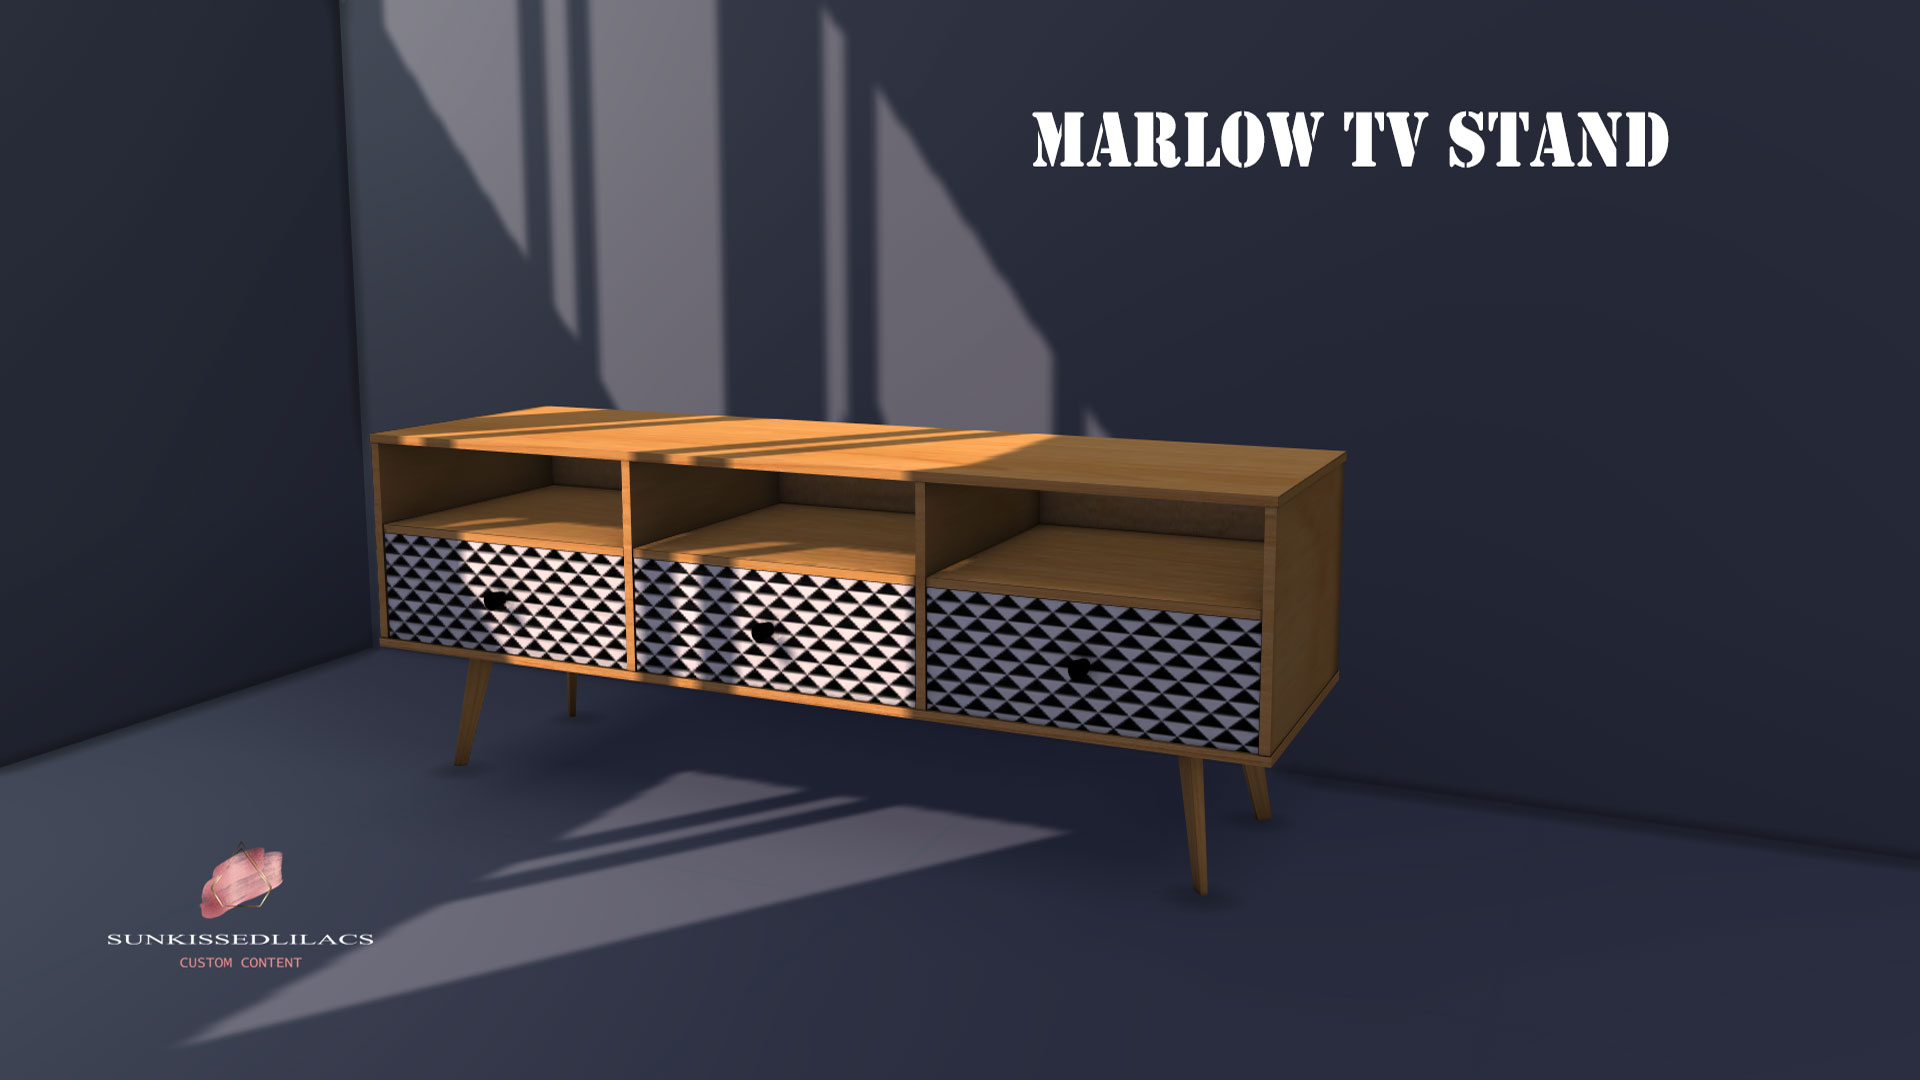 Marlow TV Stand sunkissedlilacs-simms-4-custom-content